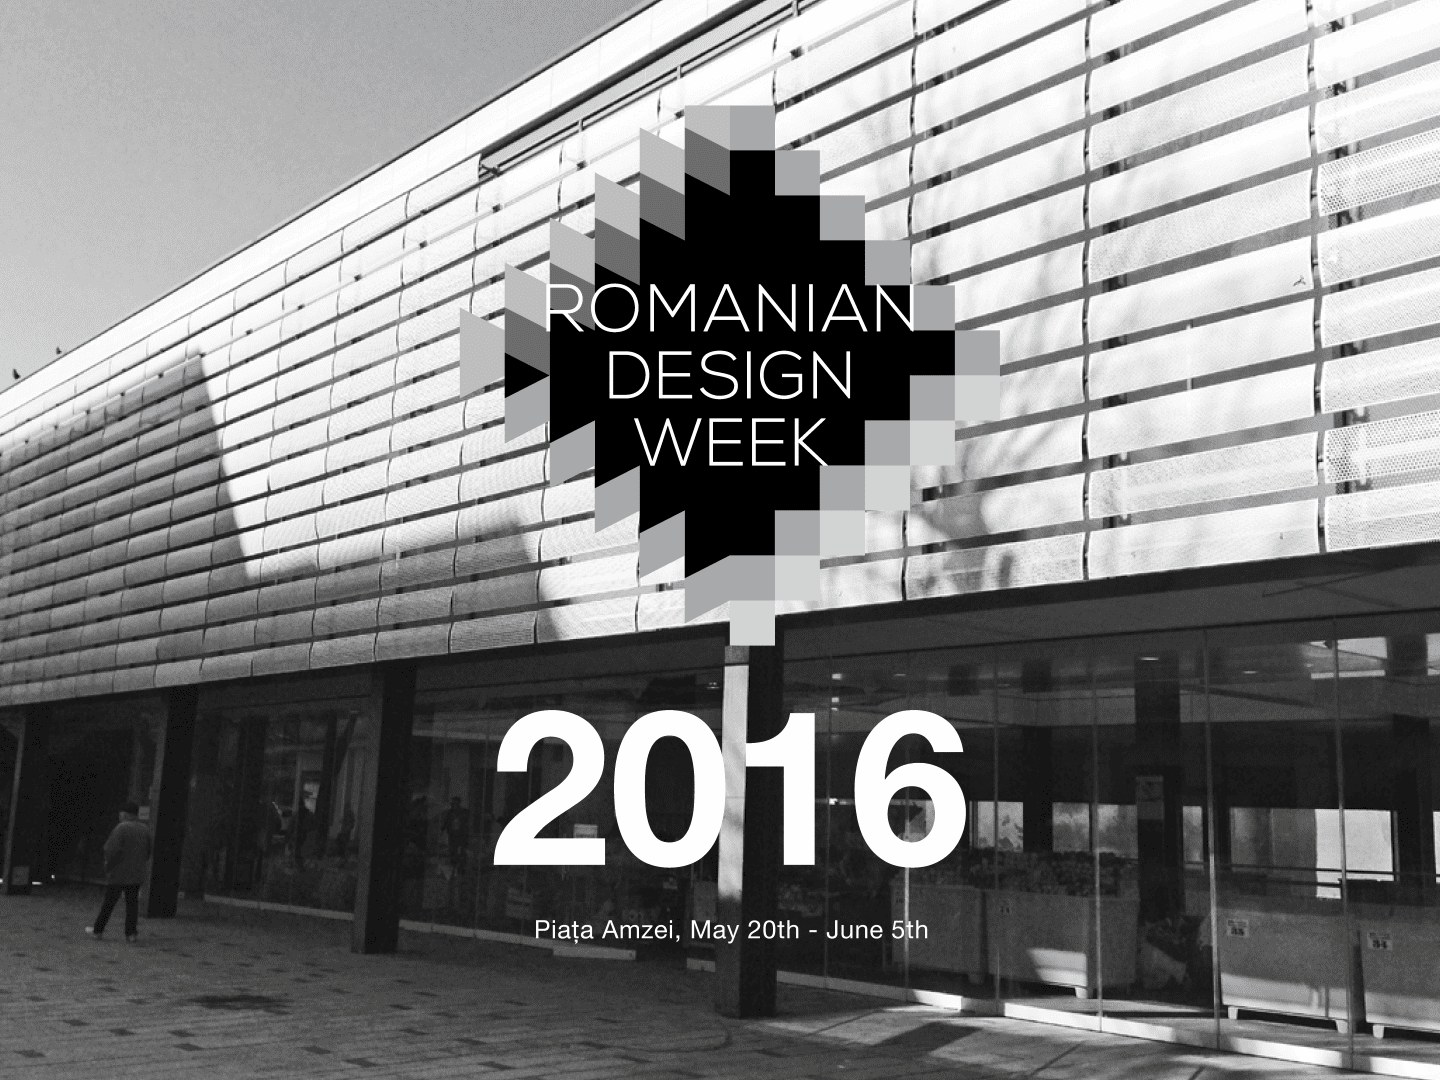 Romanian Design Week @ Piața Amzei